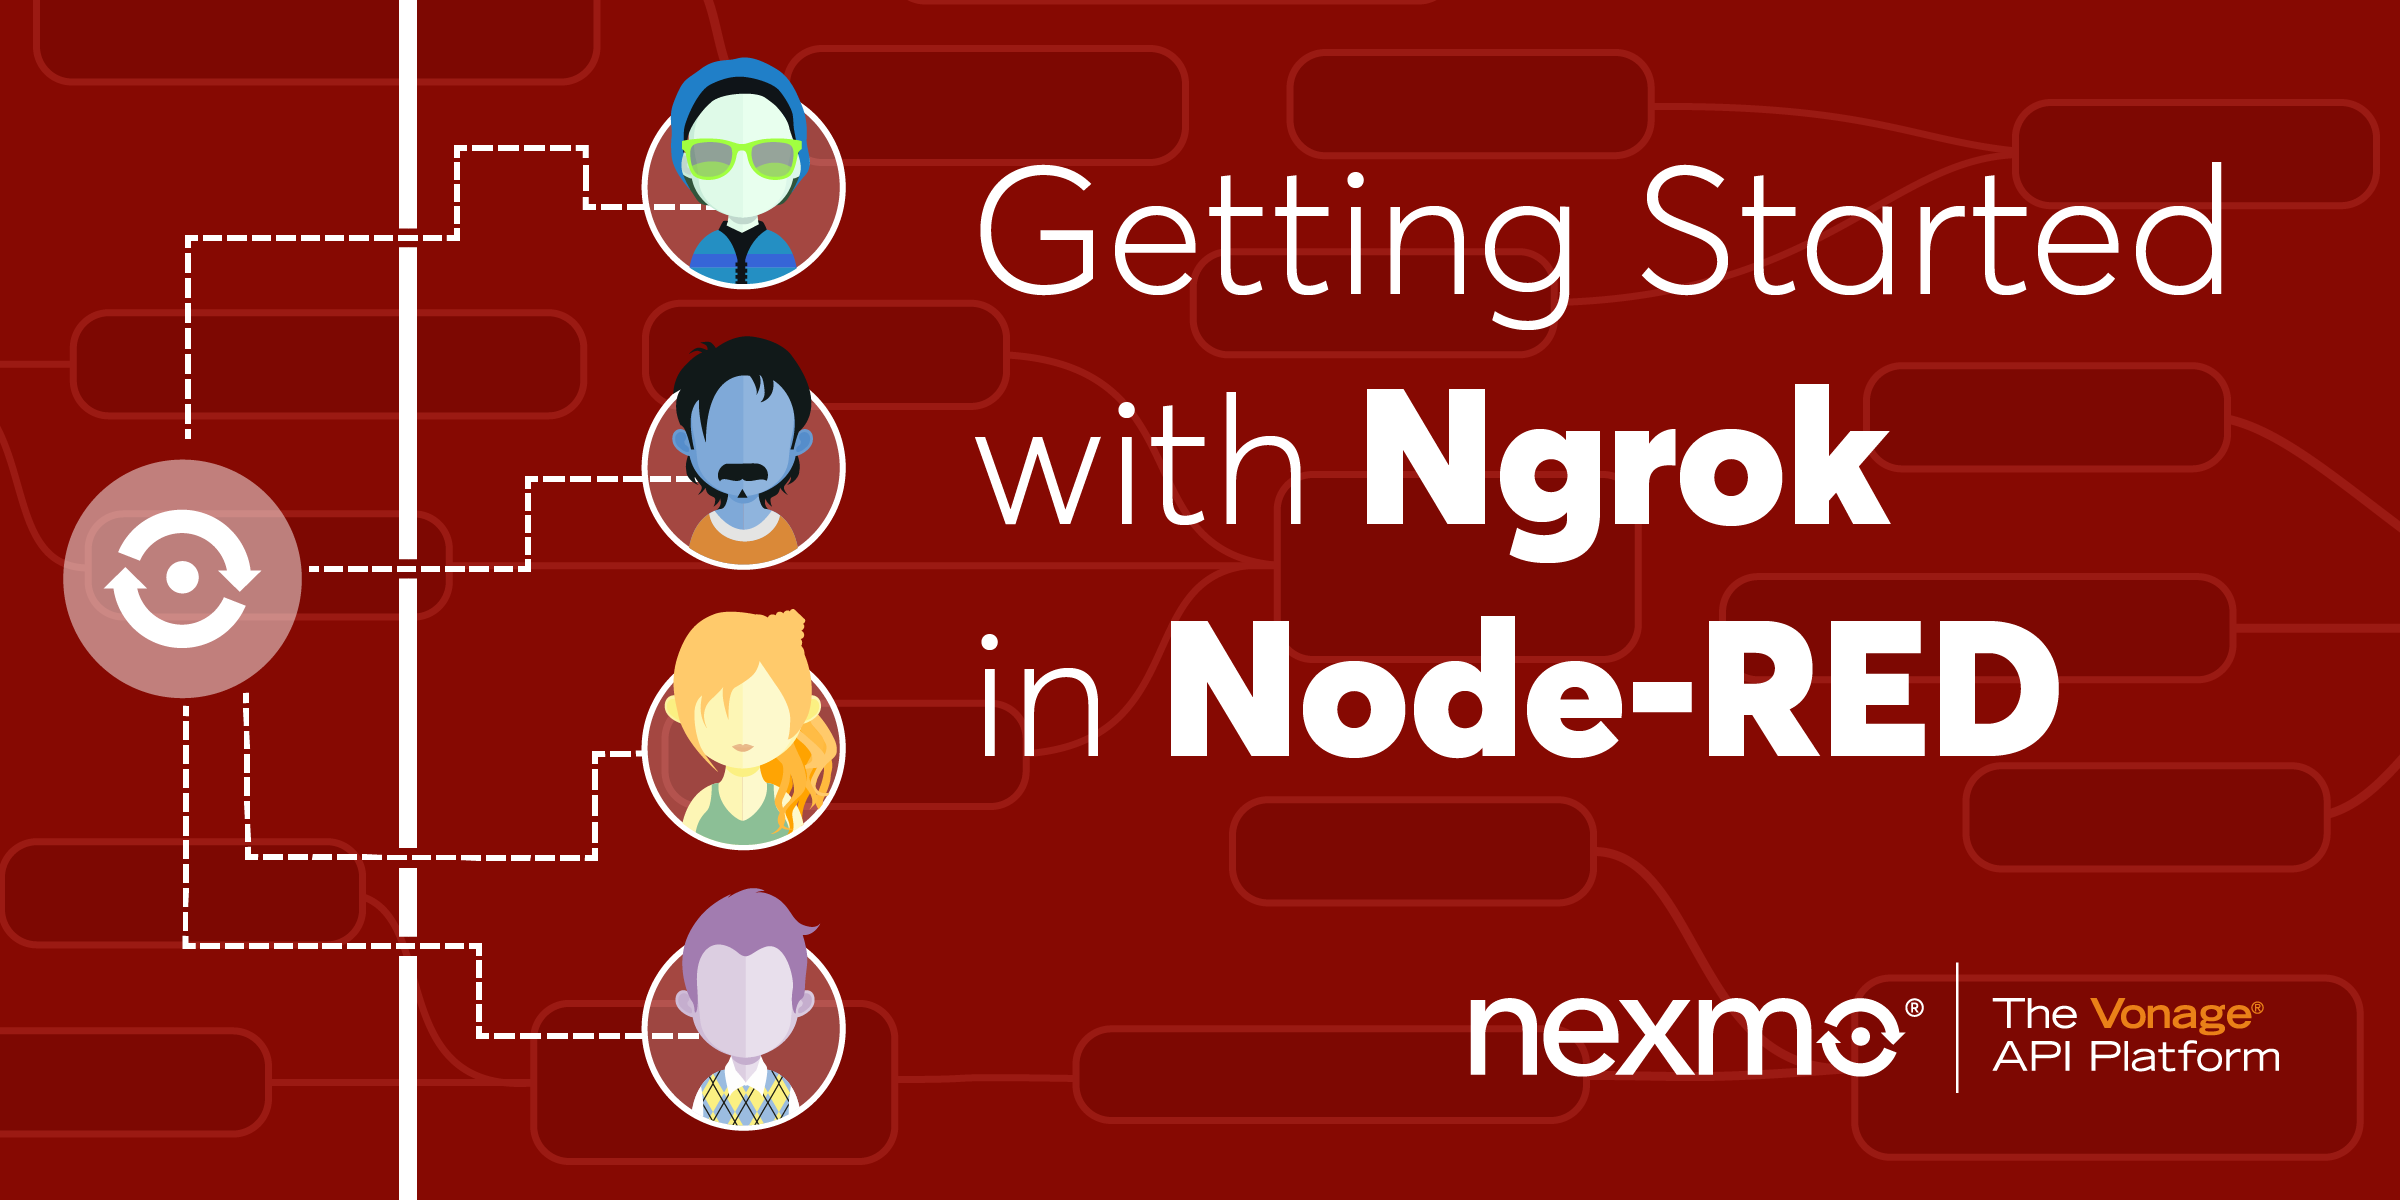 Getting Started with Ngrok in Node-RED - Nexmo Developer Blog